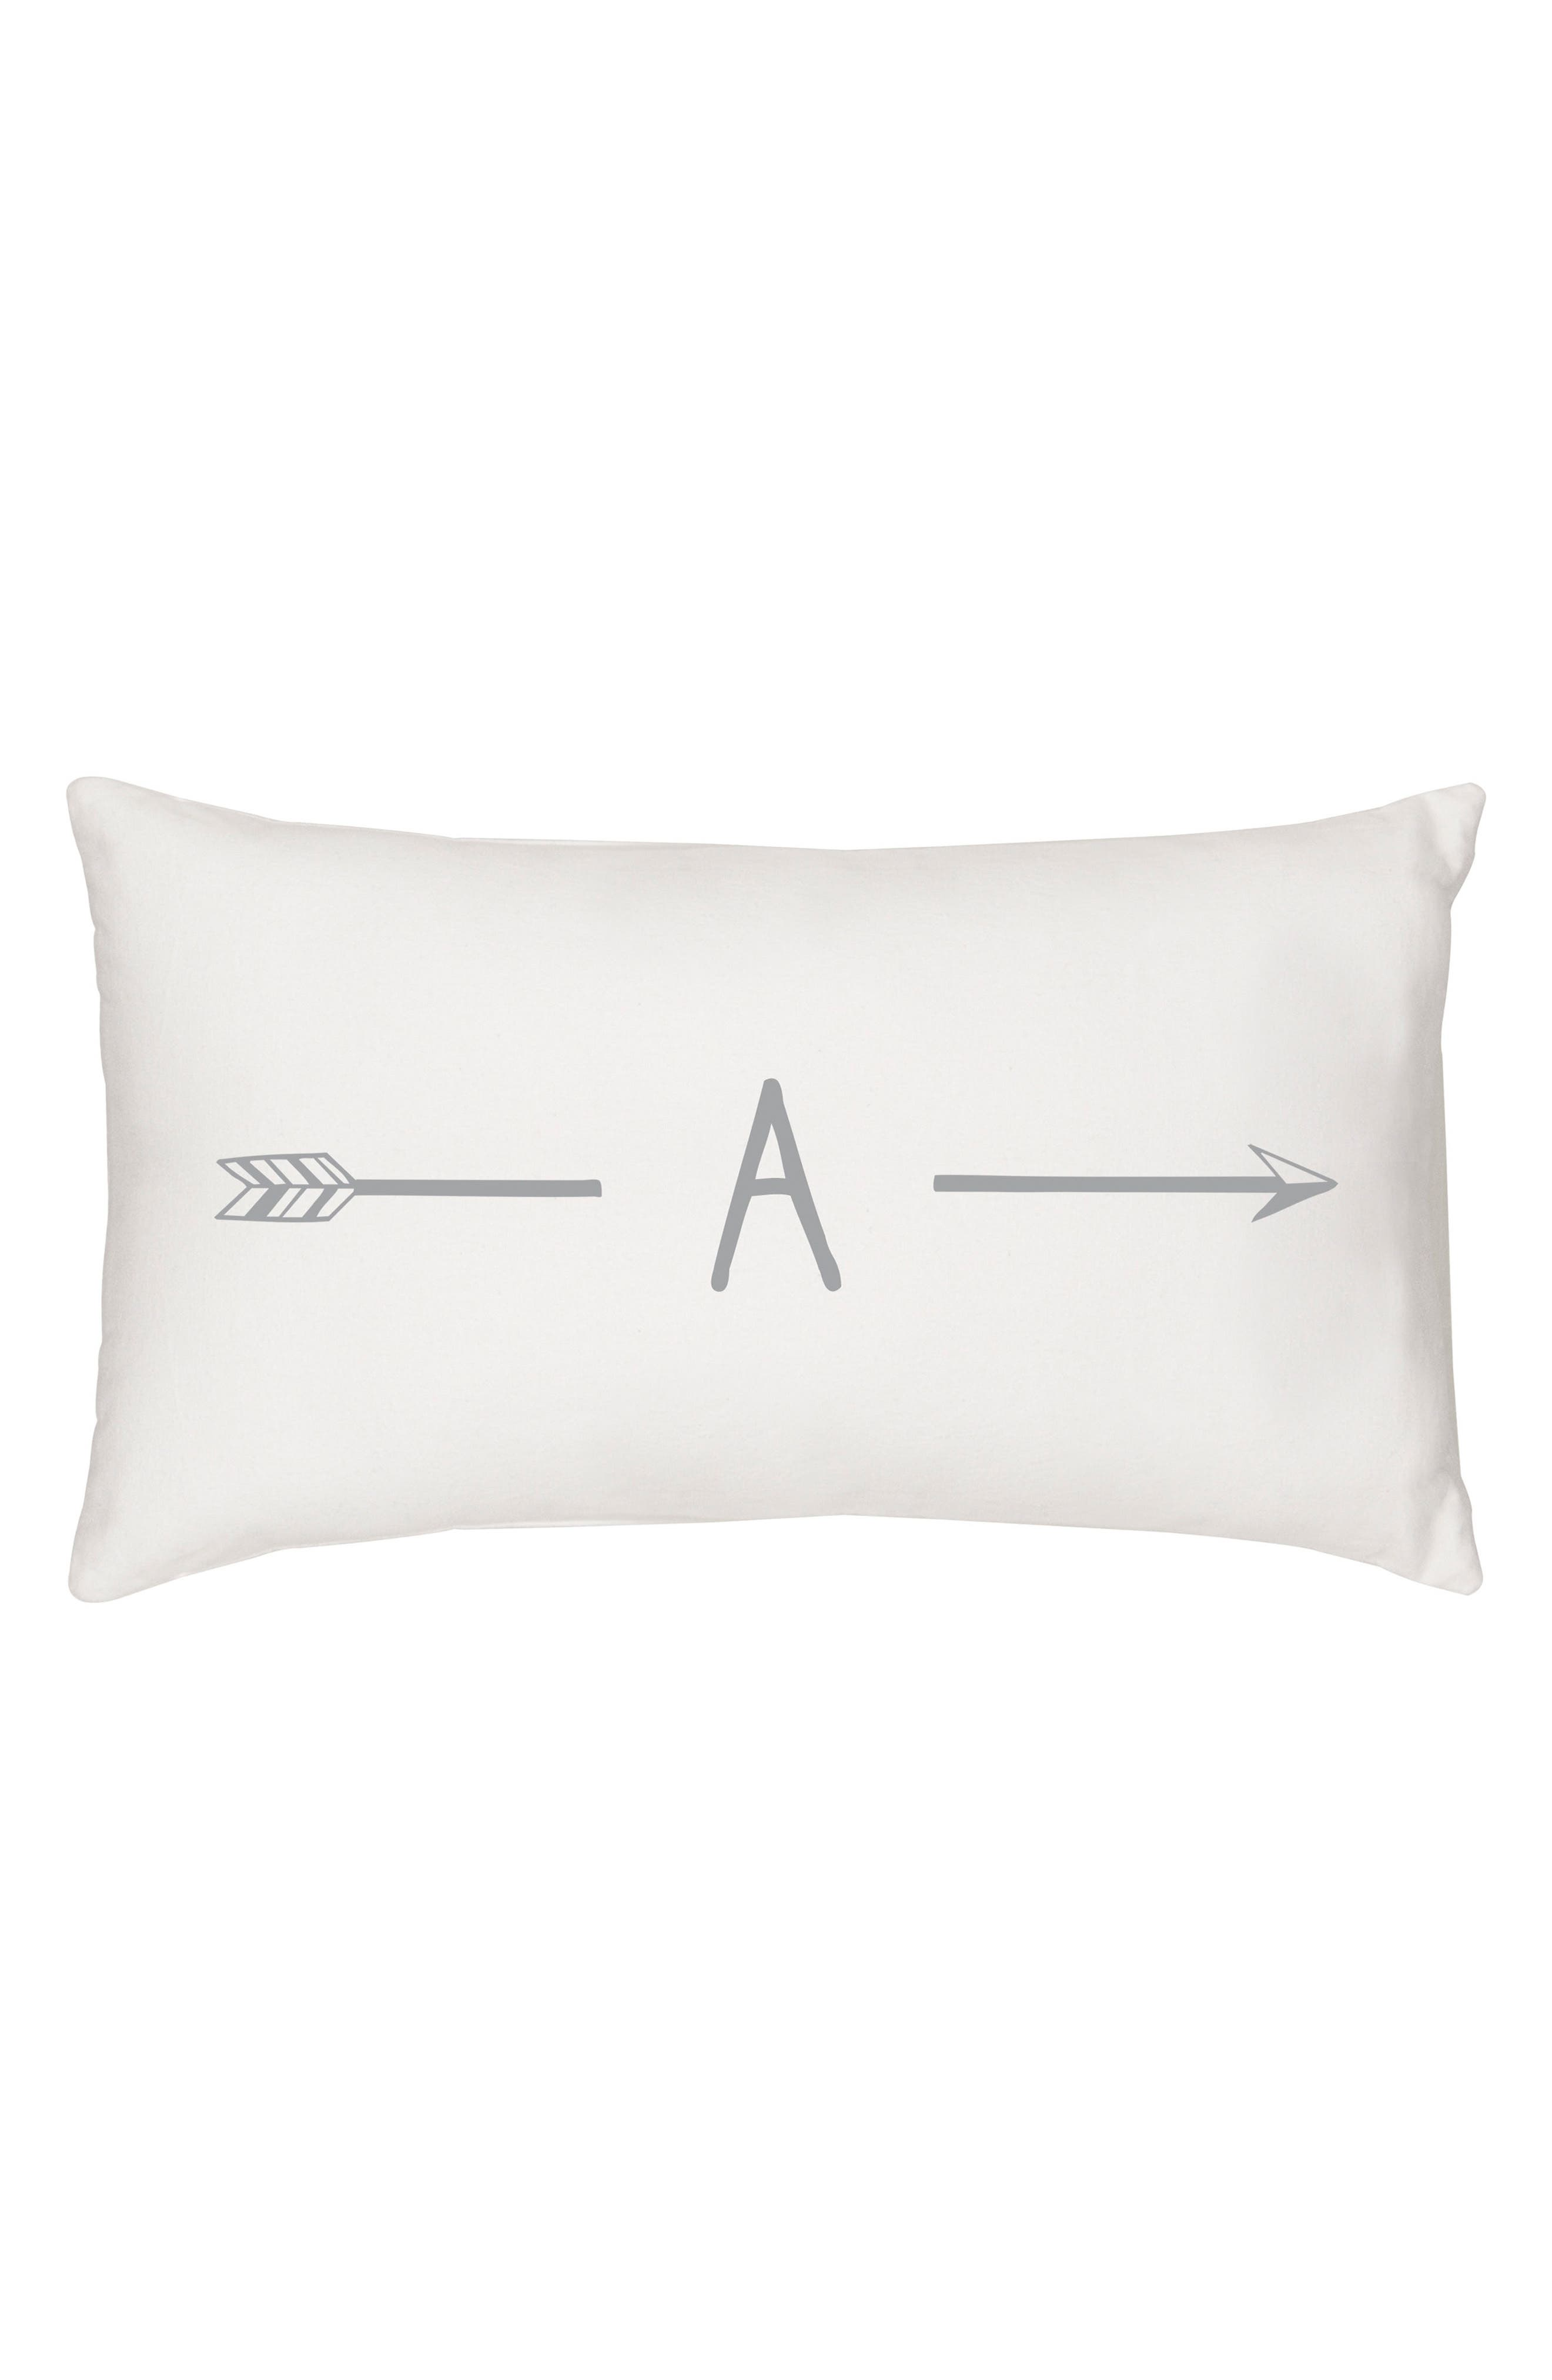 Monogram Lumbar Accent Pillow,                         Main,                         color, 020